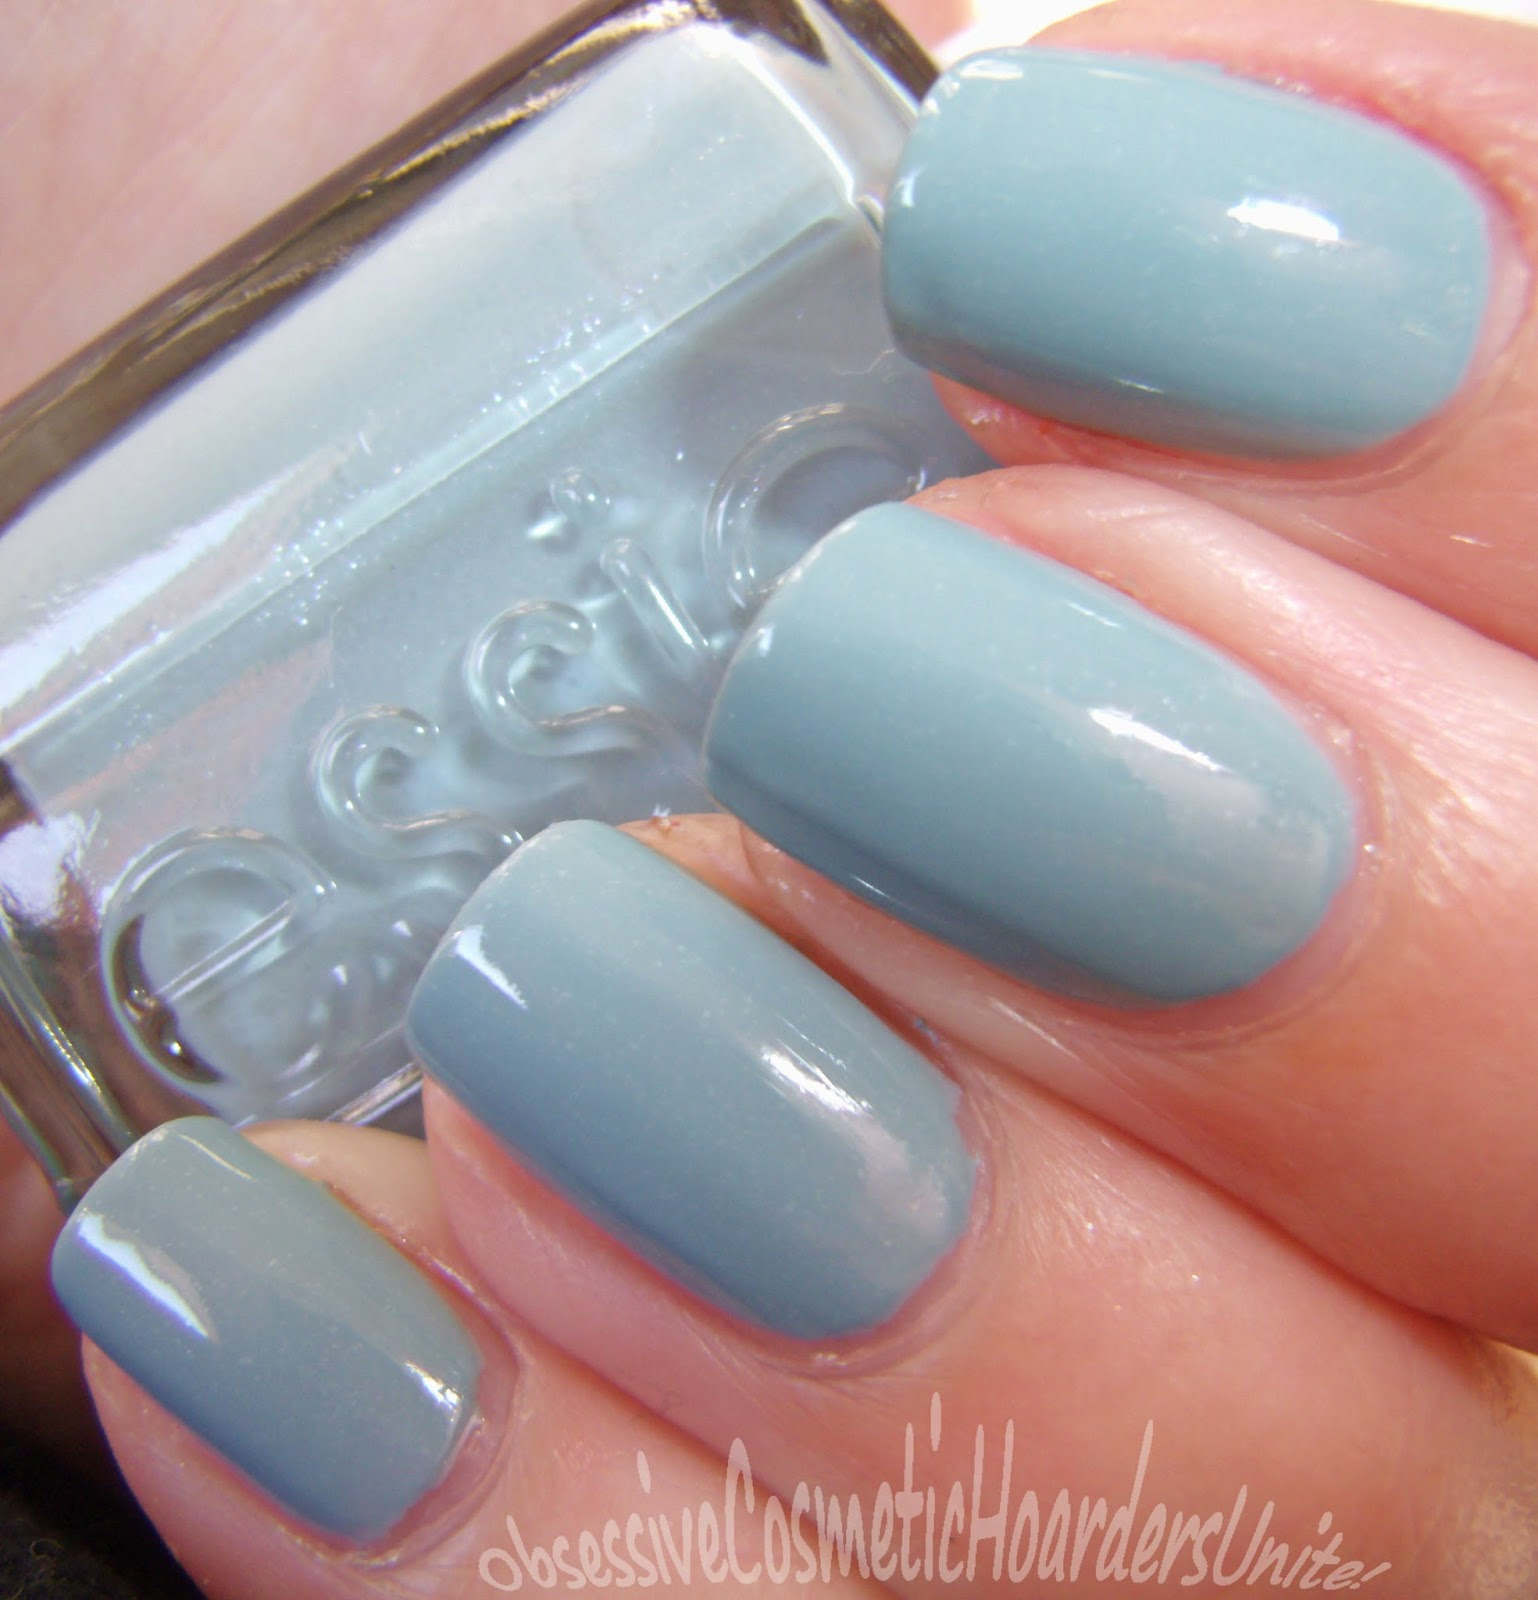 Obsessive Cosmetic Hoarders Unite!: Essie Winter 2013 | Toggle To ...